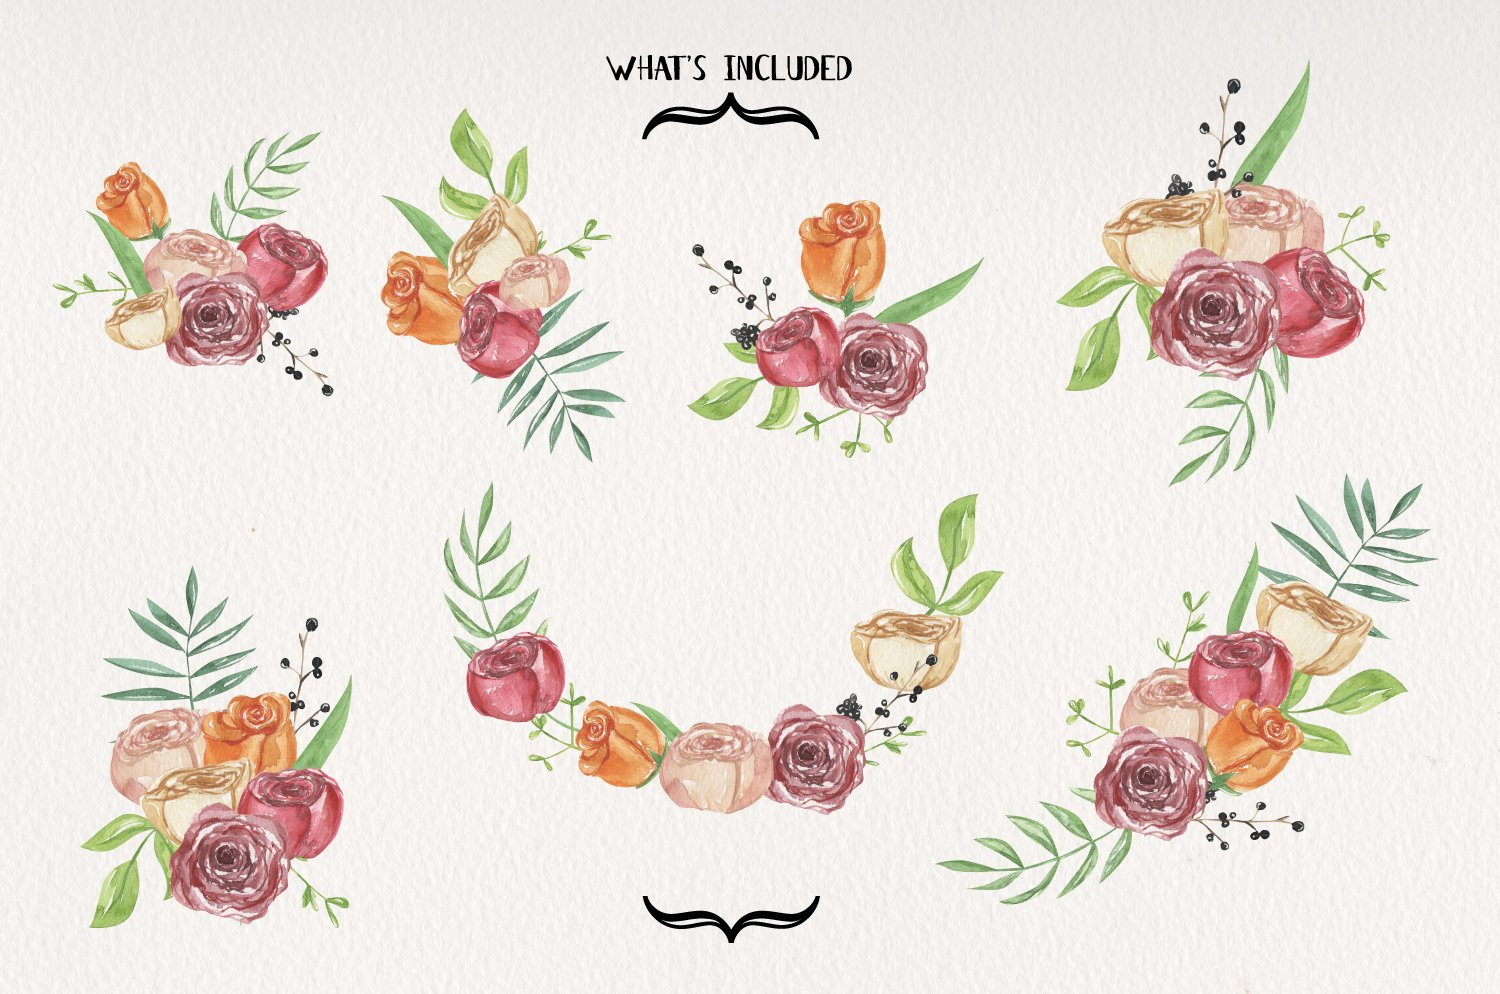 Ring Of Roses Florals 7 Watercolors Flowers Petals Bouquets example image 3